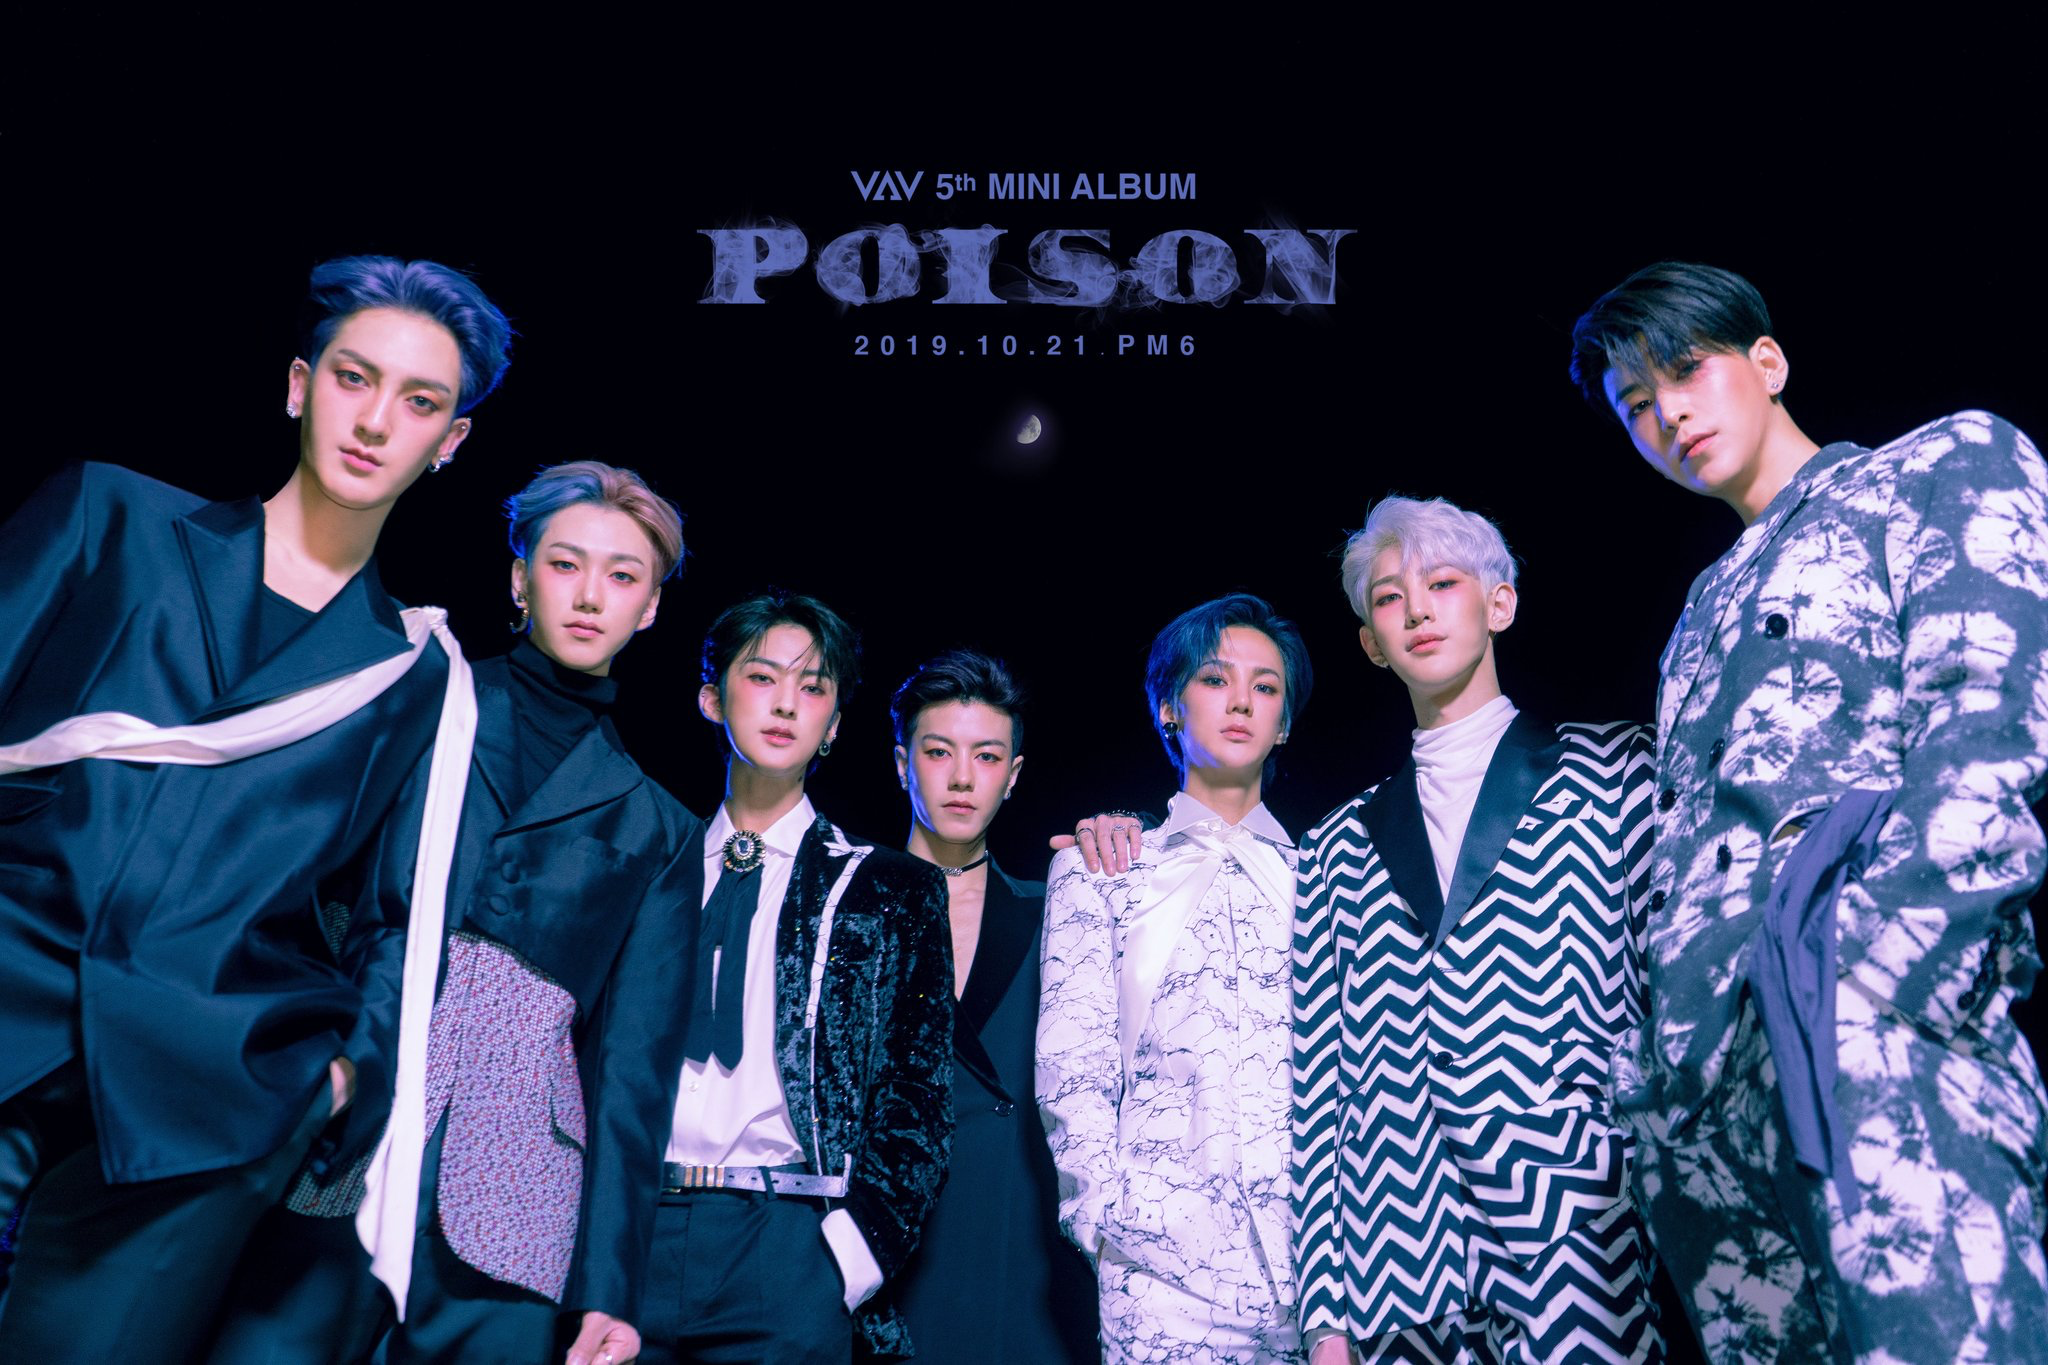 VAV Poison group concept photo 3.png